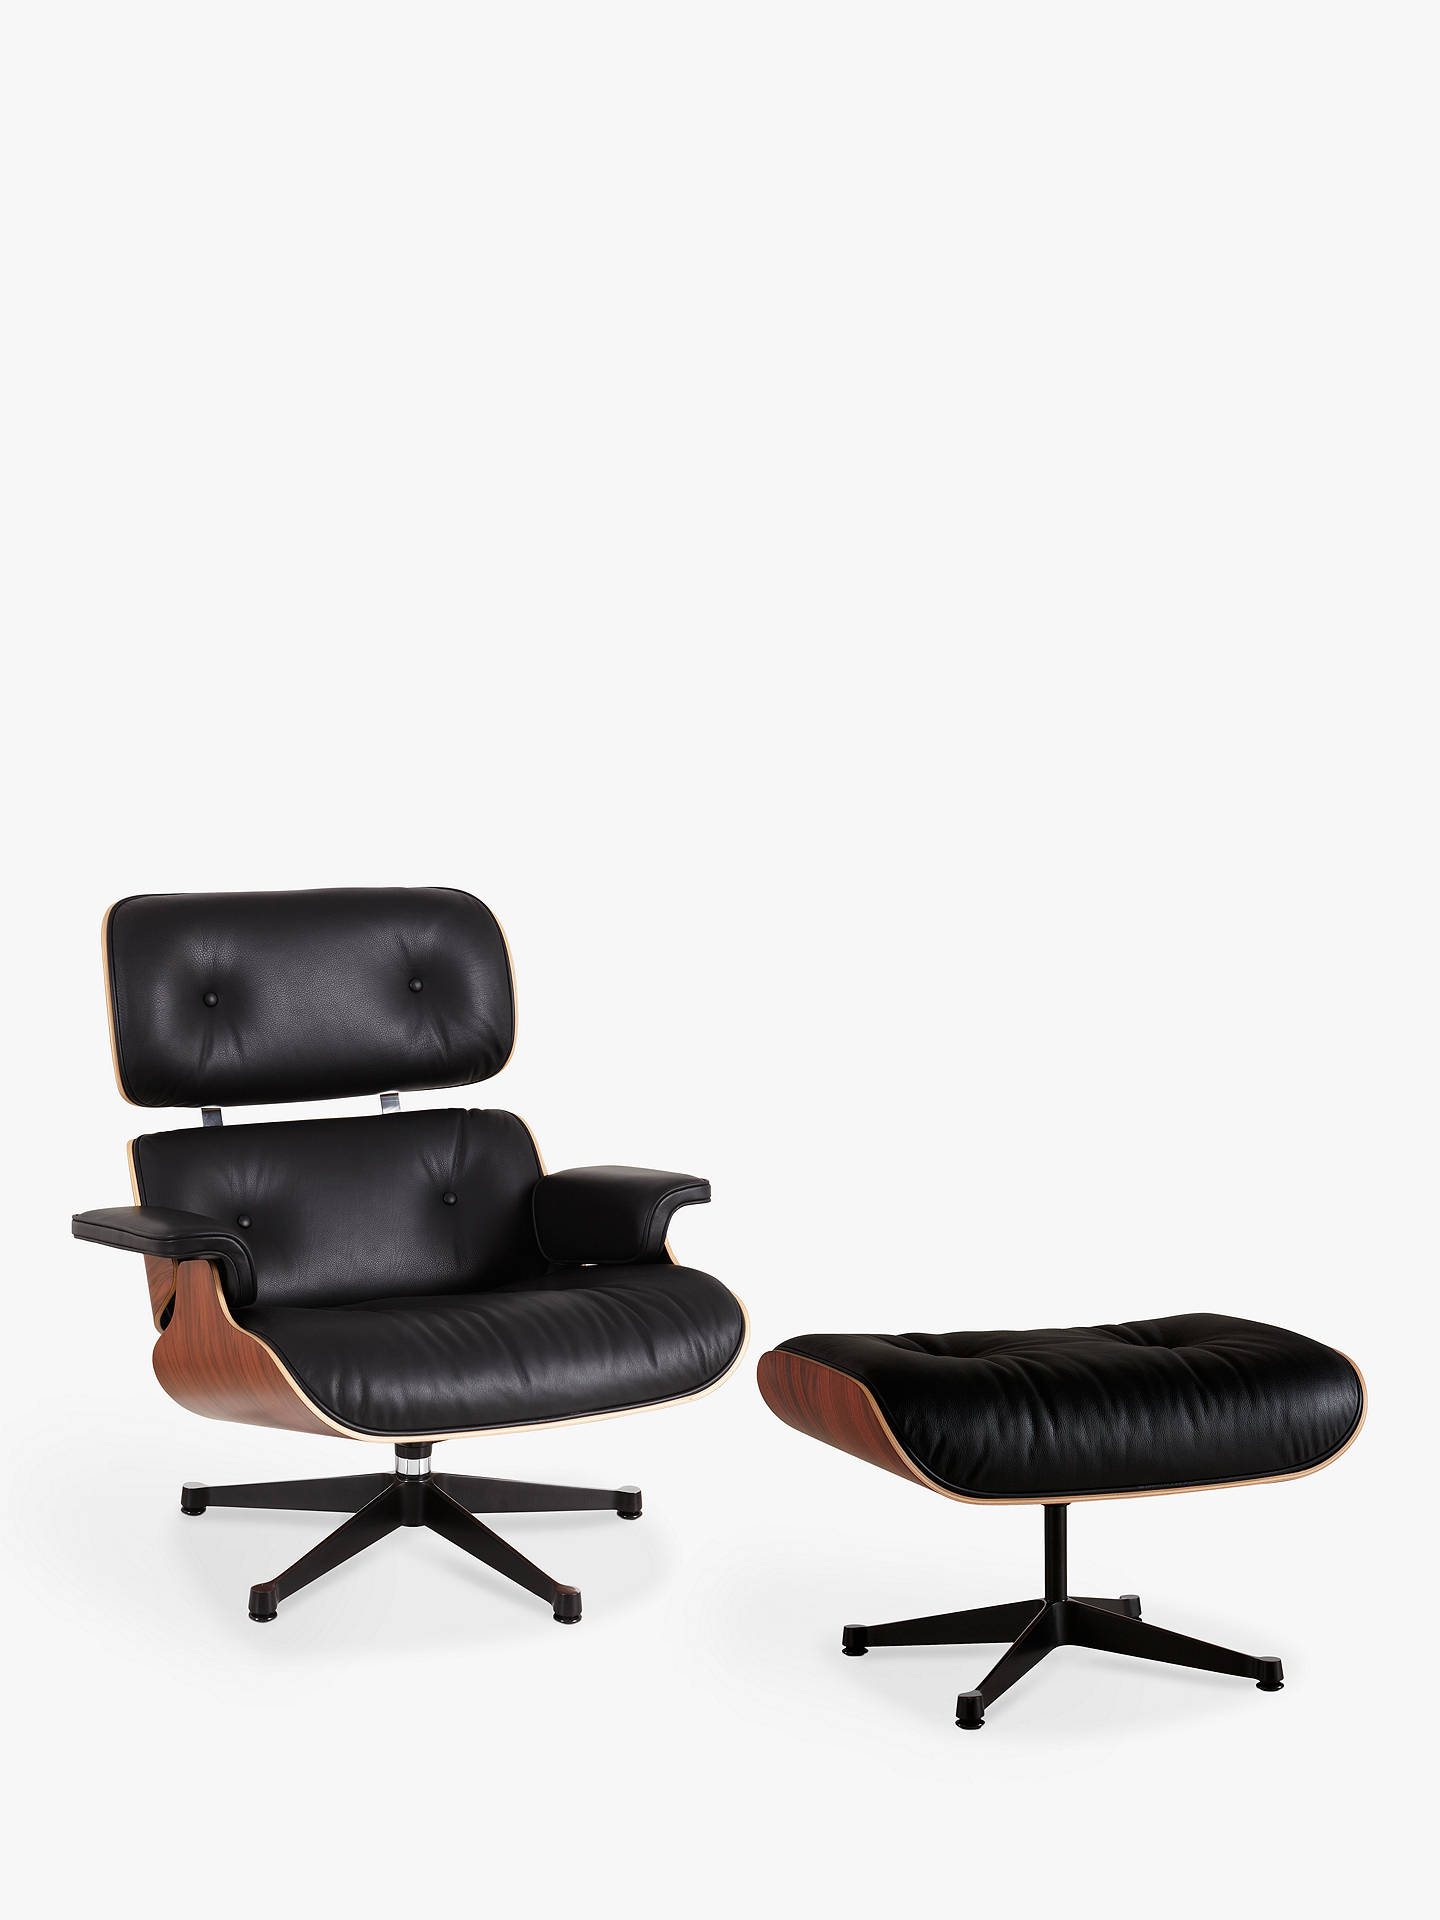 Astounding Vitra Eames Lounge Armchair Ottoman Black Pallisander Short Links Chair Design For Home Short Linksinfo